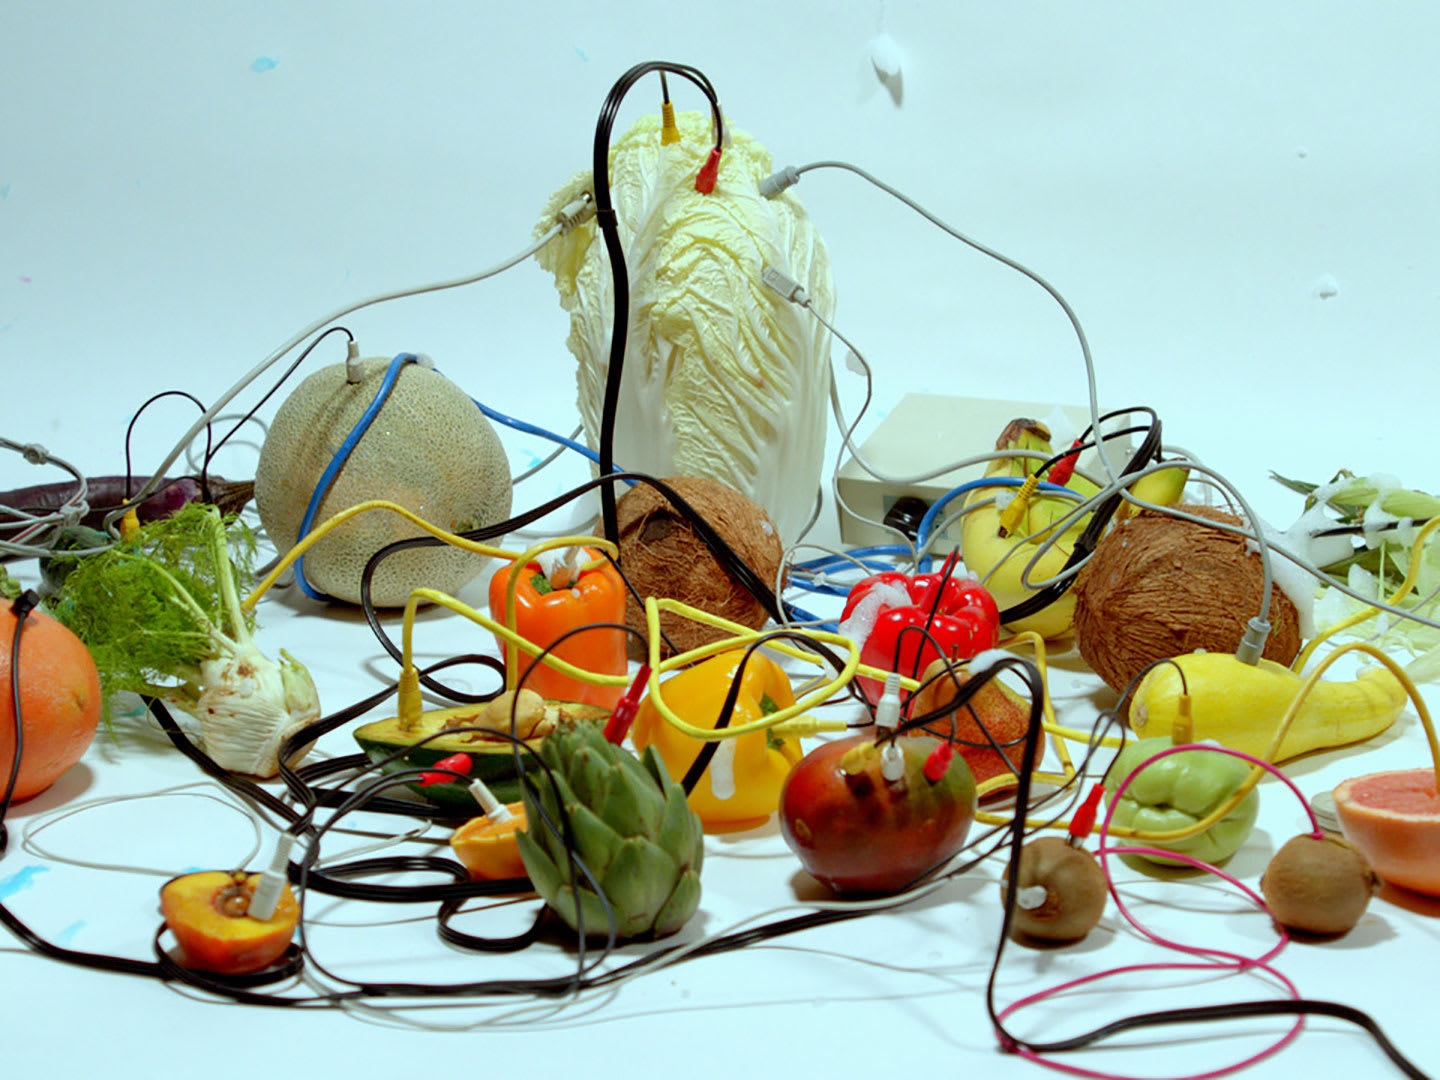 Various fruit items connected by wires.